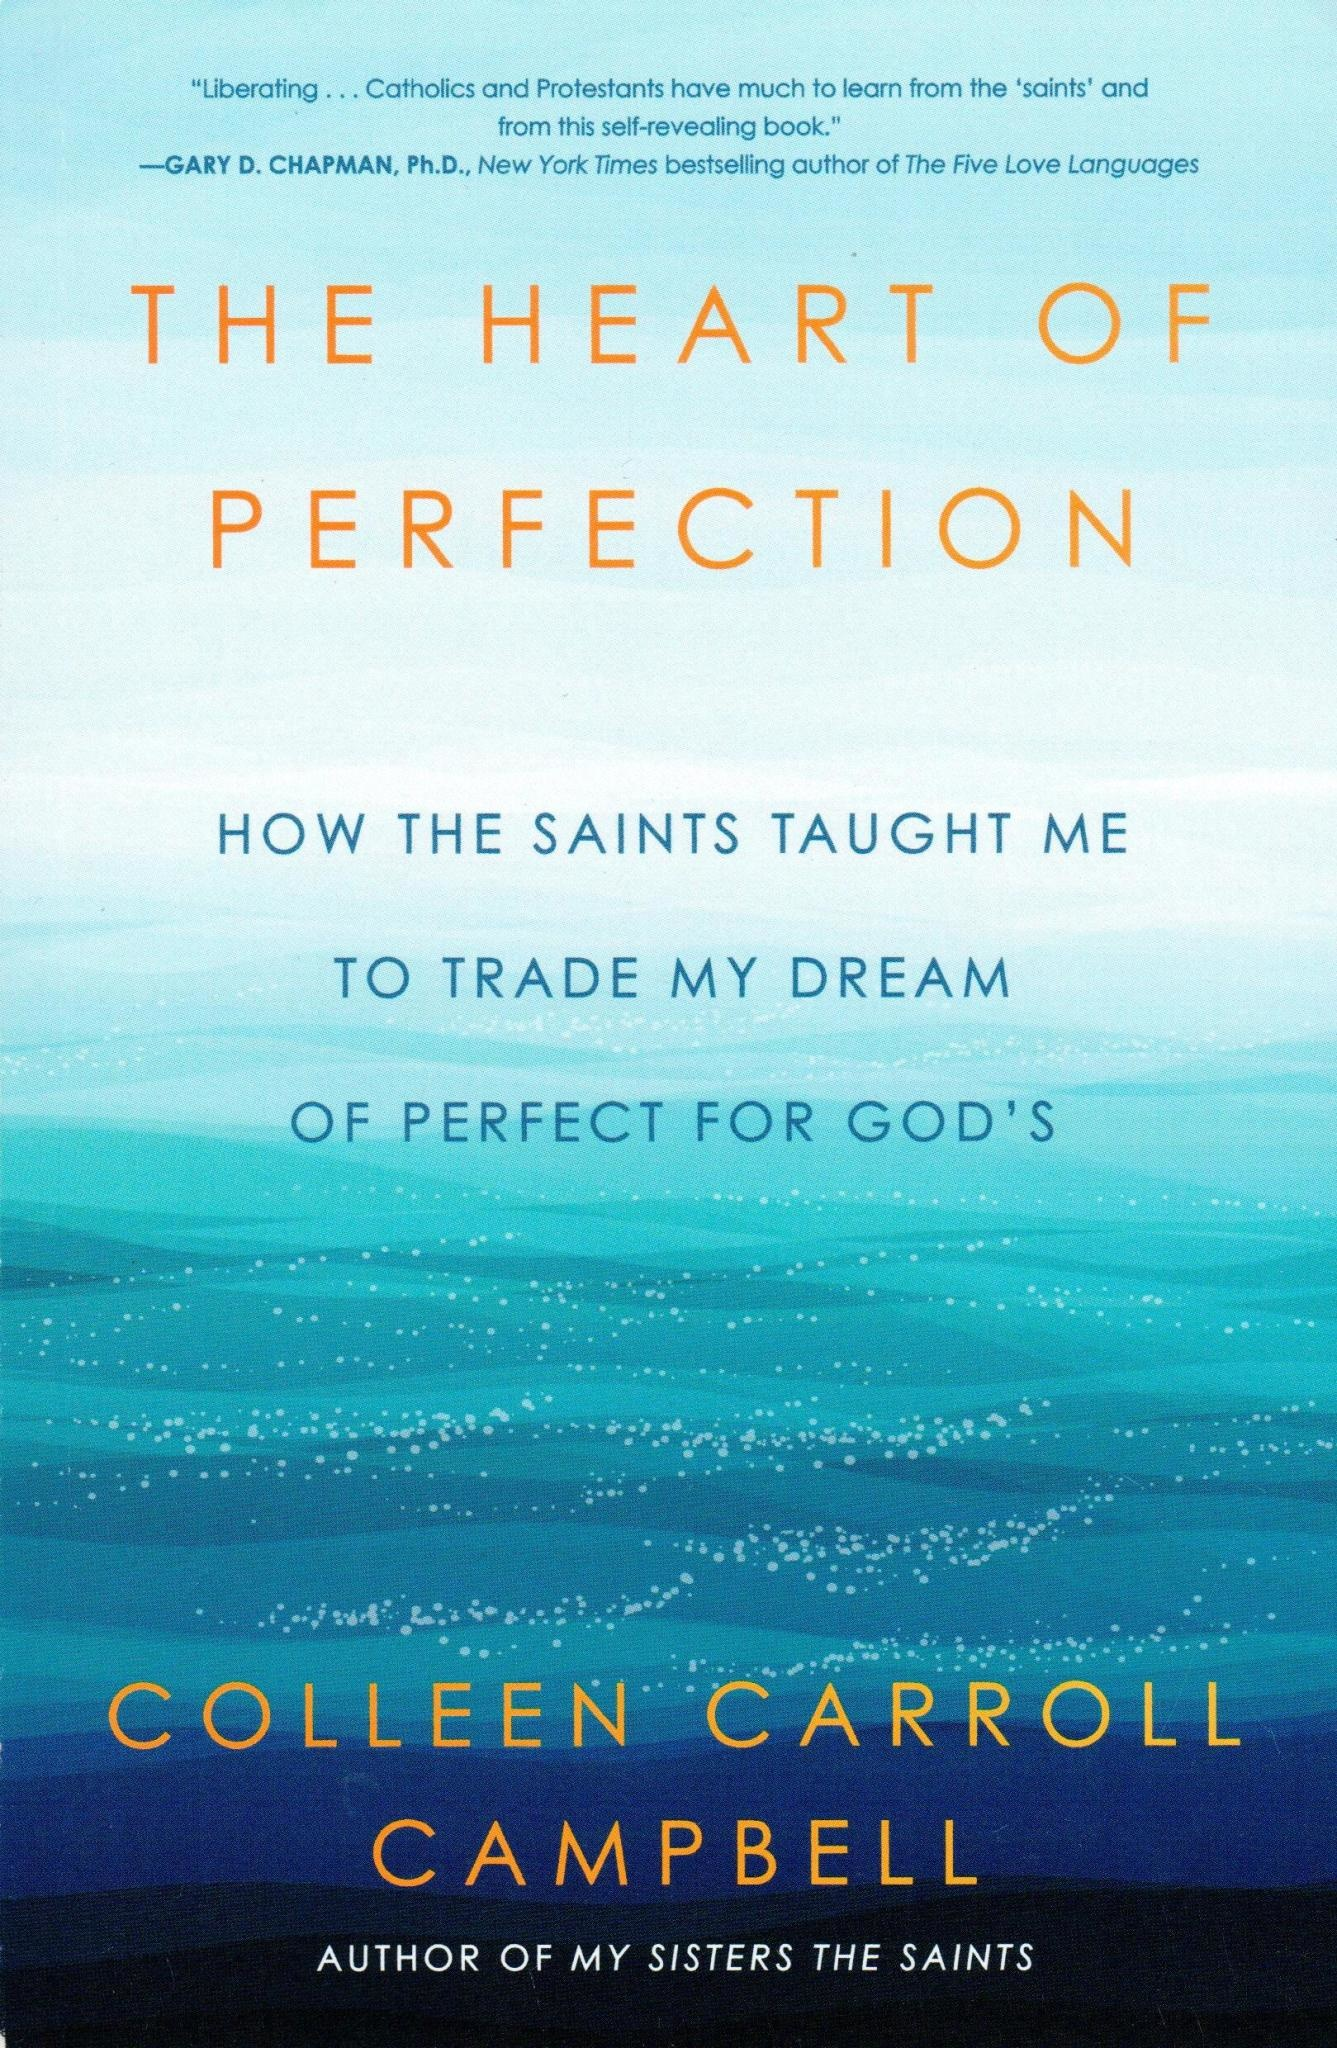 Howard Books The Heart of Perfection: How the Saints Taught Me to Trade My Dream of Perfect for God's